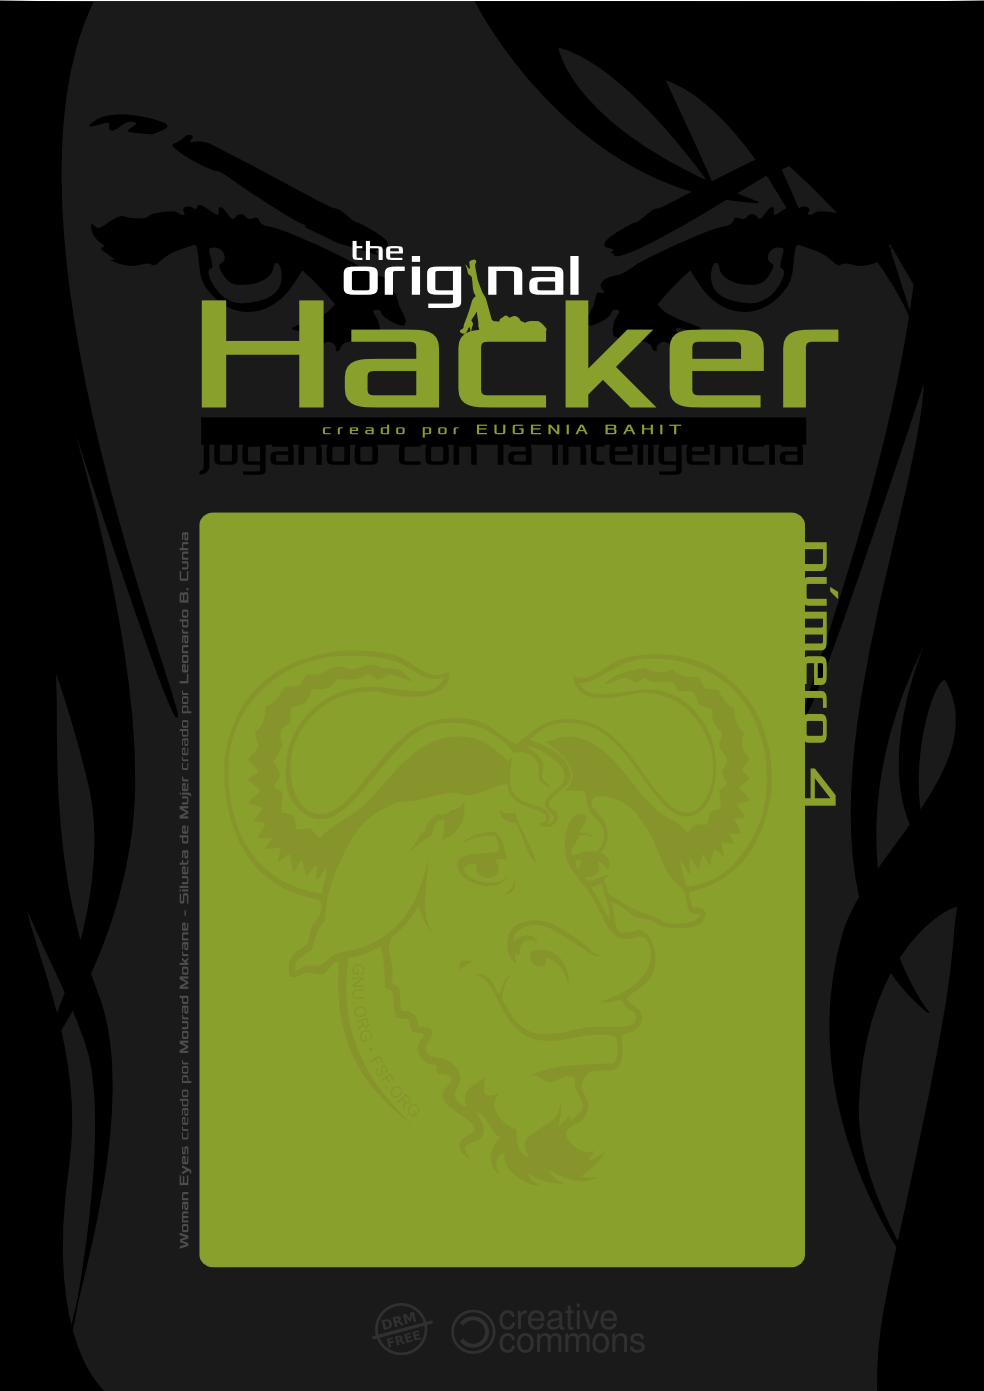 Descargar The Original Hacker # 5